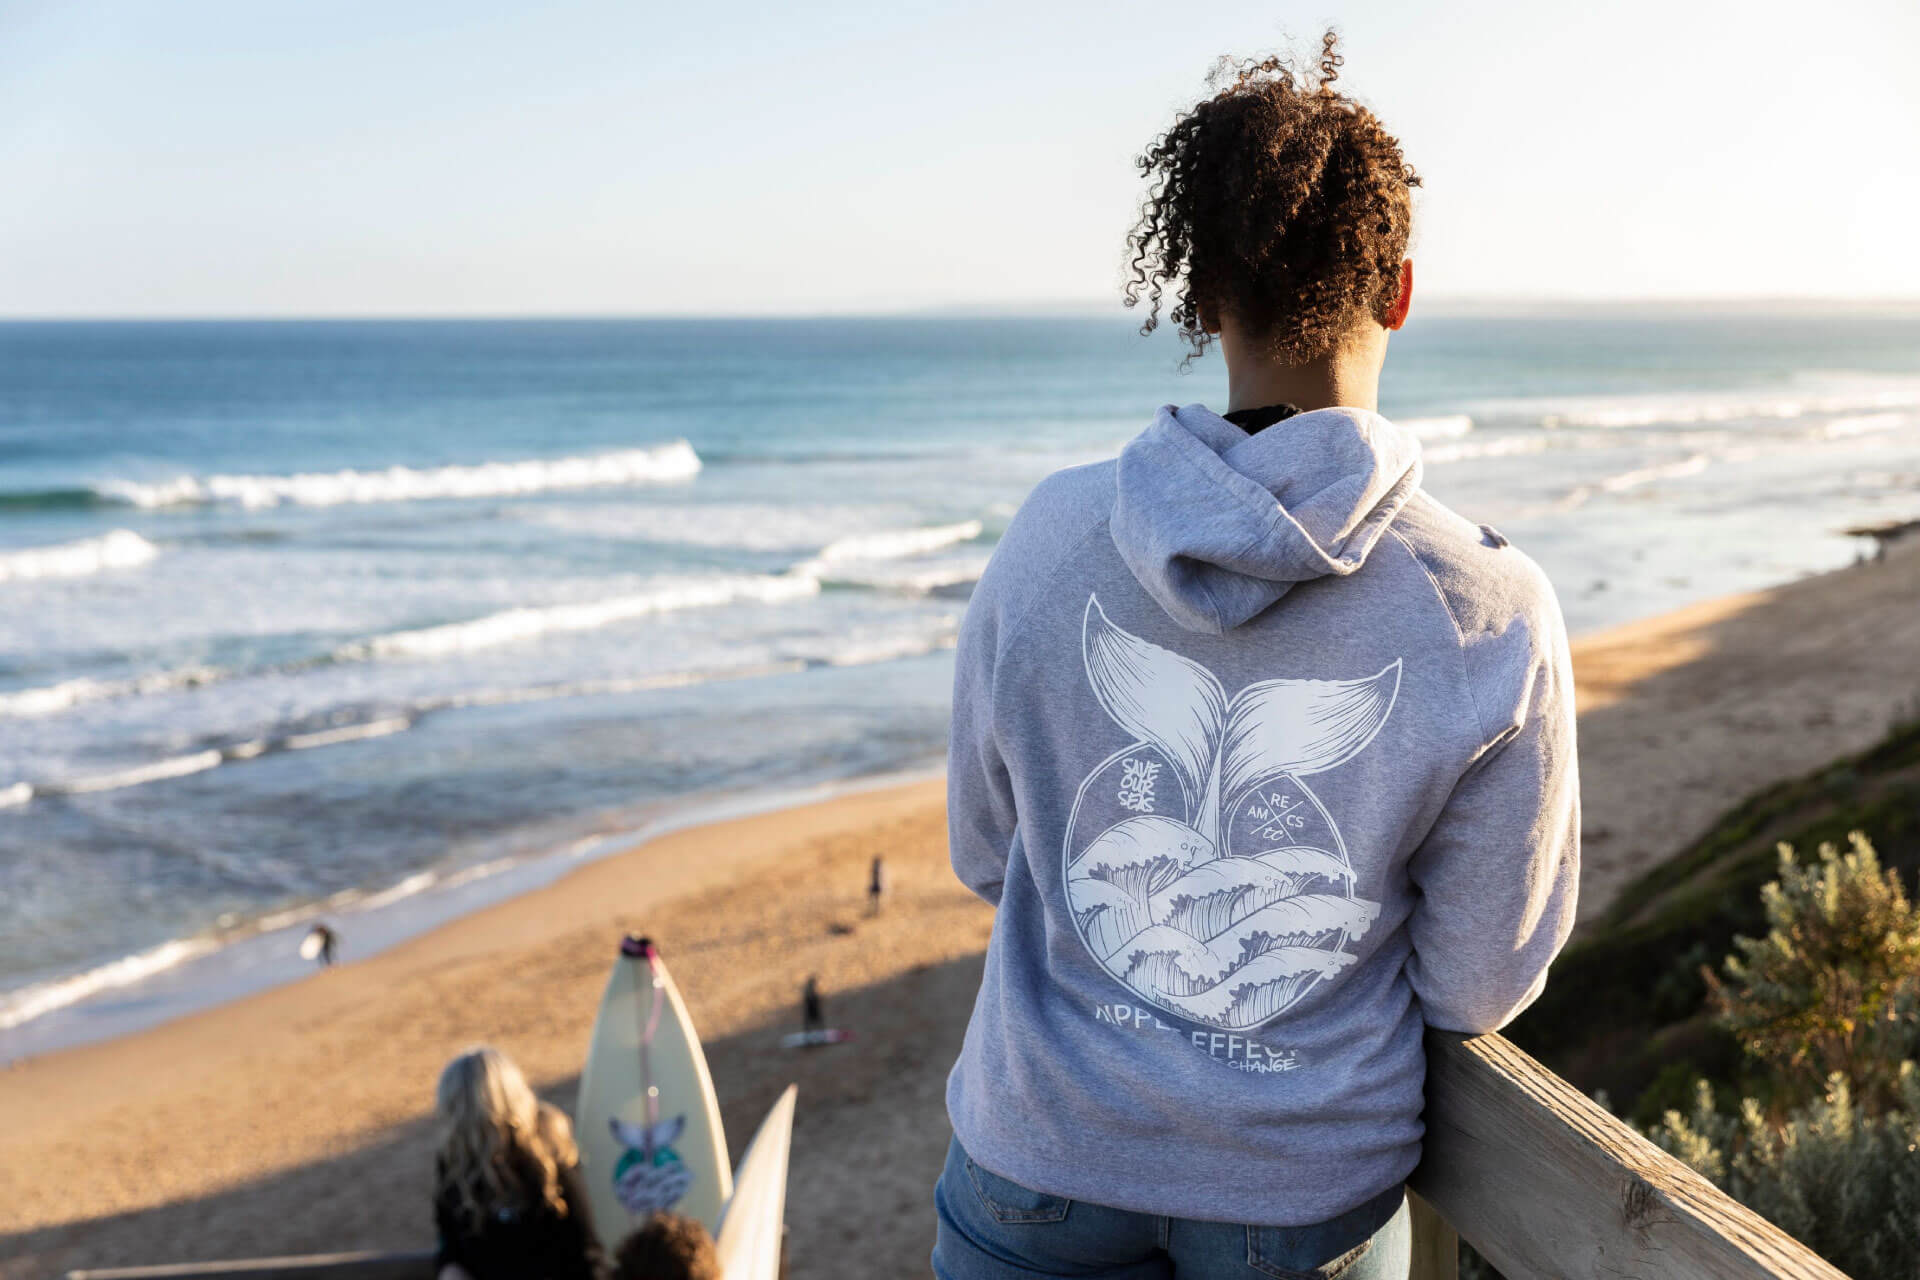 RIPPLE EFFECT the change-grey-mens-hoody overlooking beach